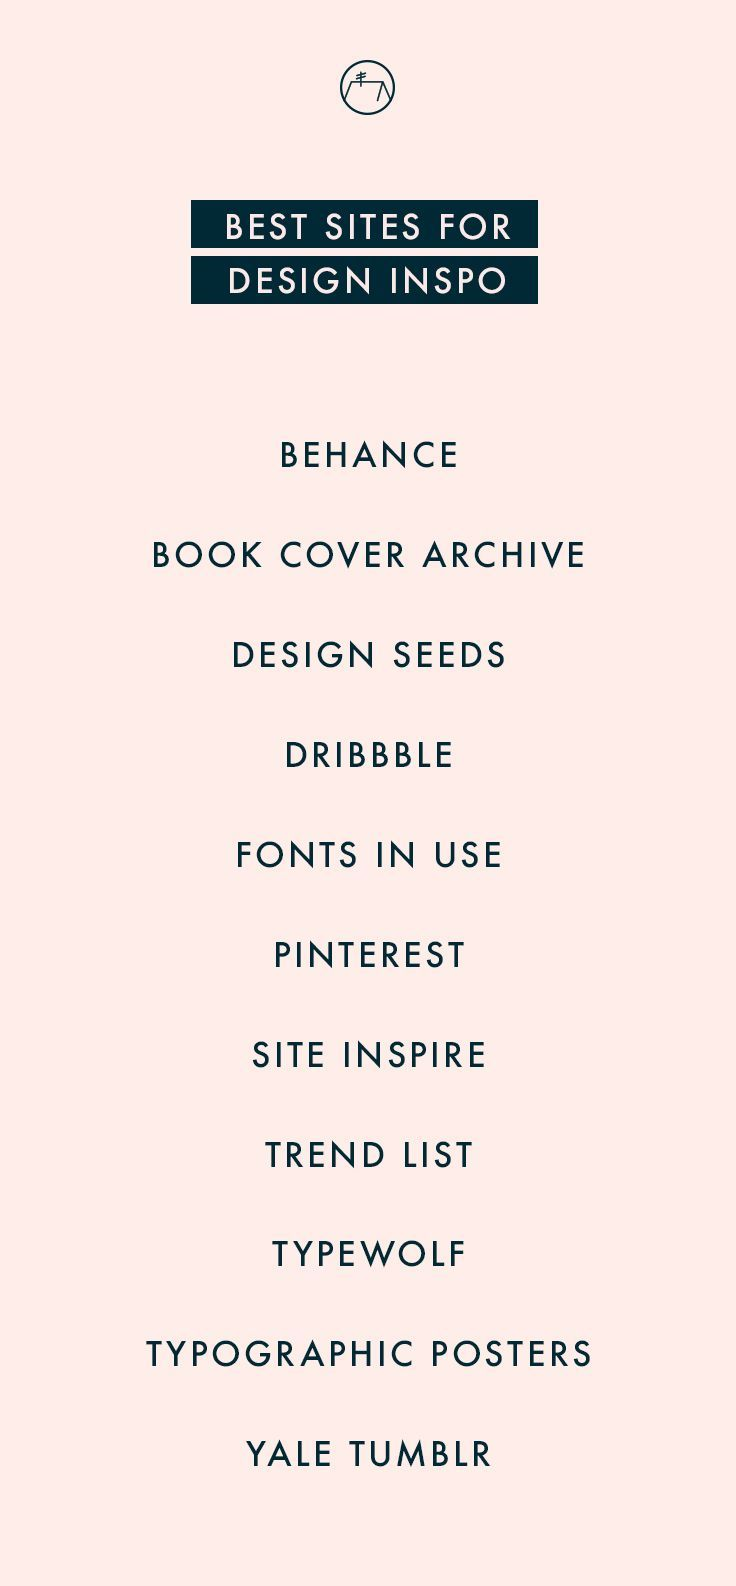 My go-to sites for design inspiration. Check em out or click through to read full post! littletrailerstudio.com/